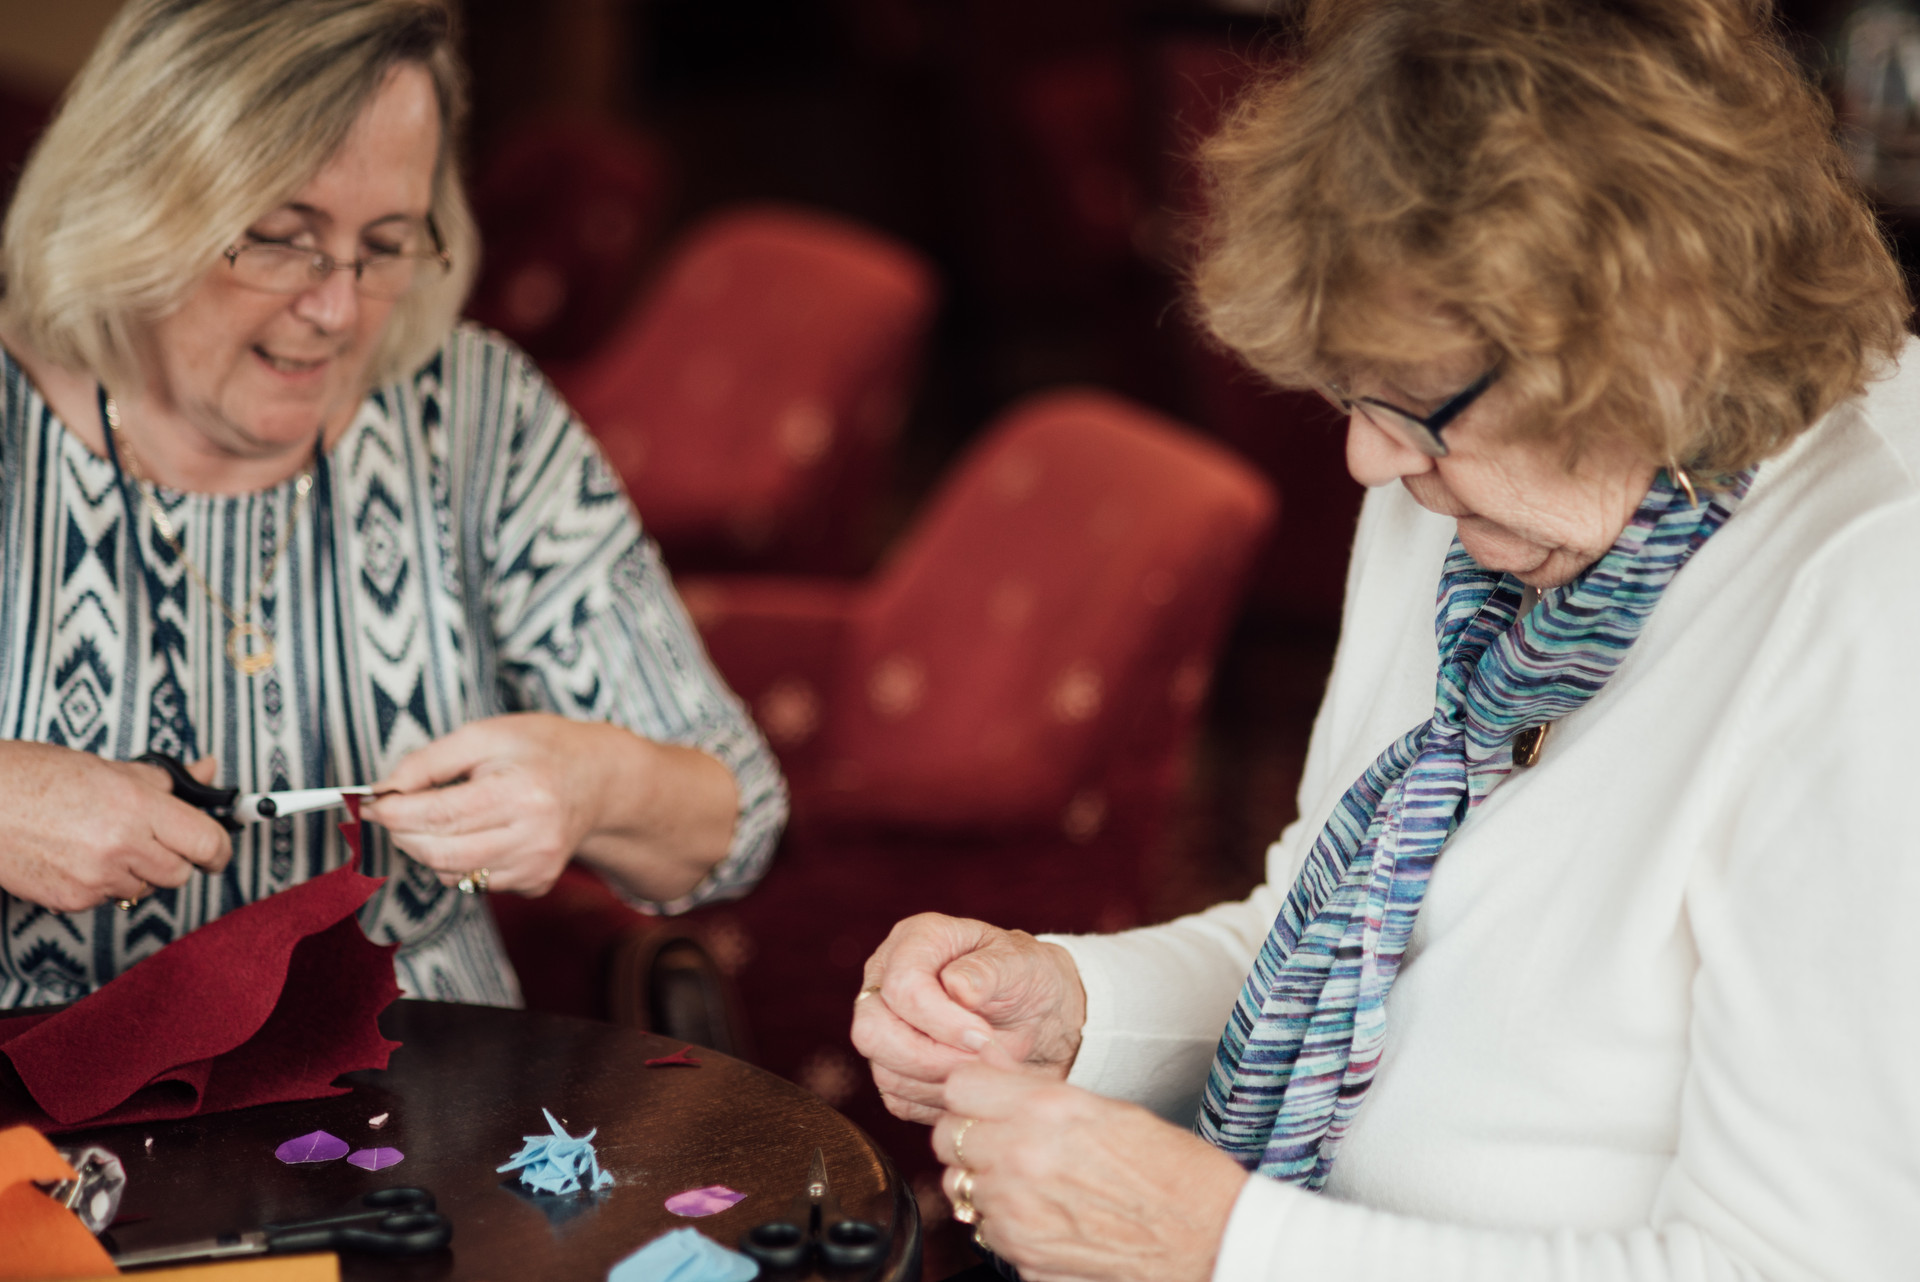 Two ladies smiling and cutting fabric in a craft activity.